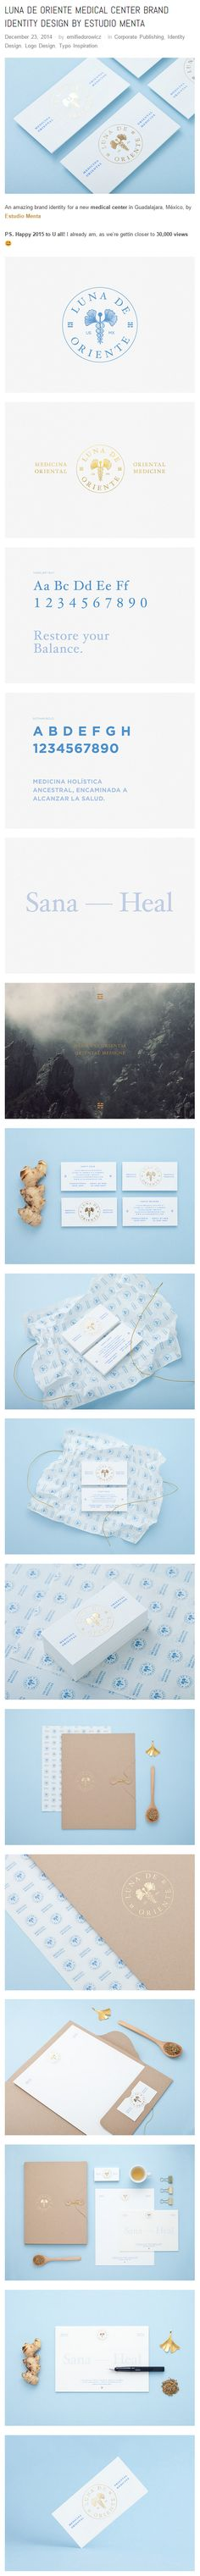 Luna de Oriente Medical Center Brand Identity Design by Estudio Menta - - Logo Design, Brand Identity Design, Branding Design, Graphic Design, Branding Ideas, Logo Branding, Logos, What Is Fashion Designing, Stress And Depression